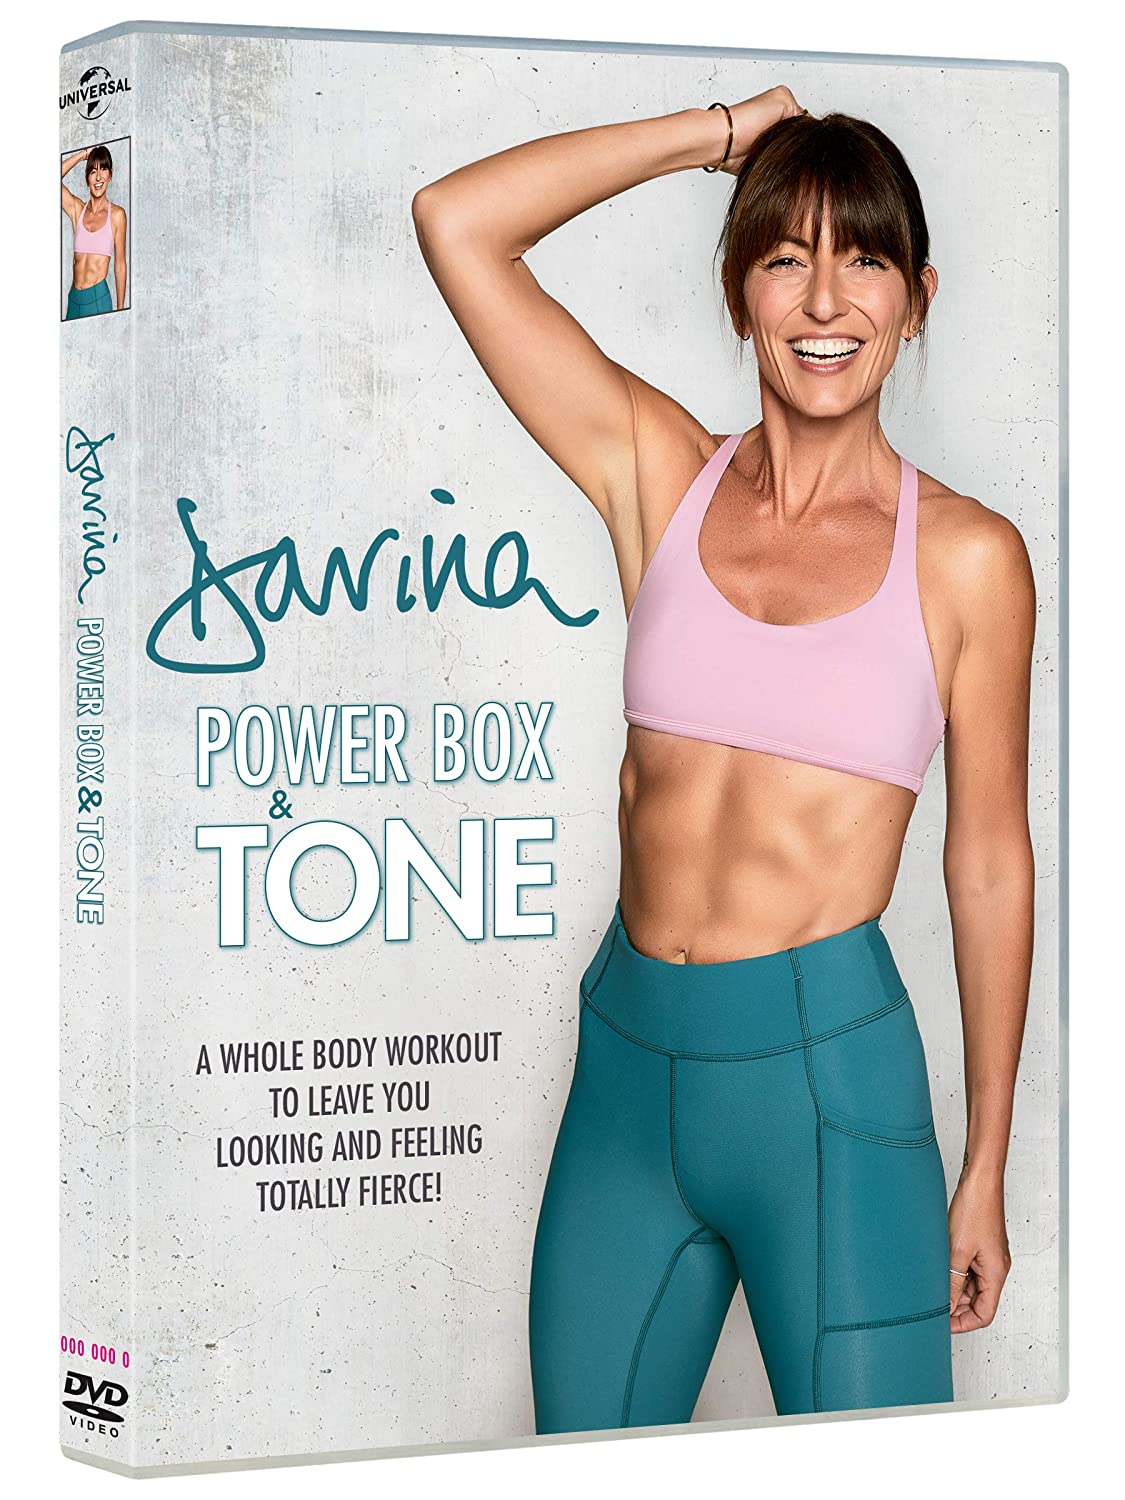 Discussion on this topic: Our top winter fitness DVDs, our-top-winter-fitness-dvds/